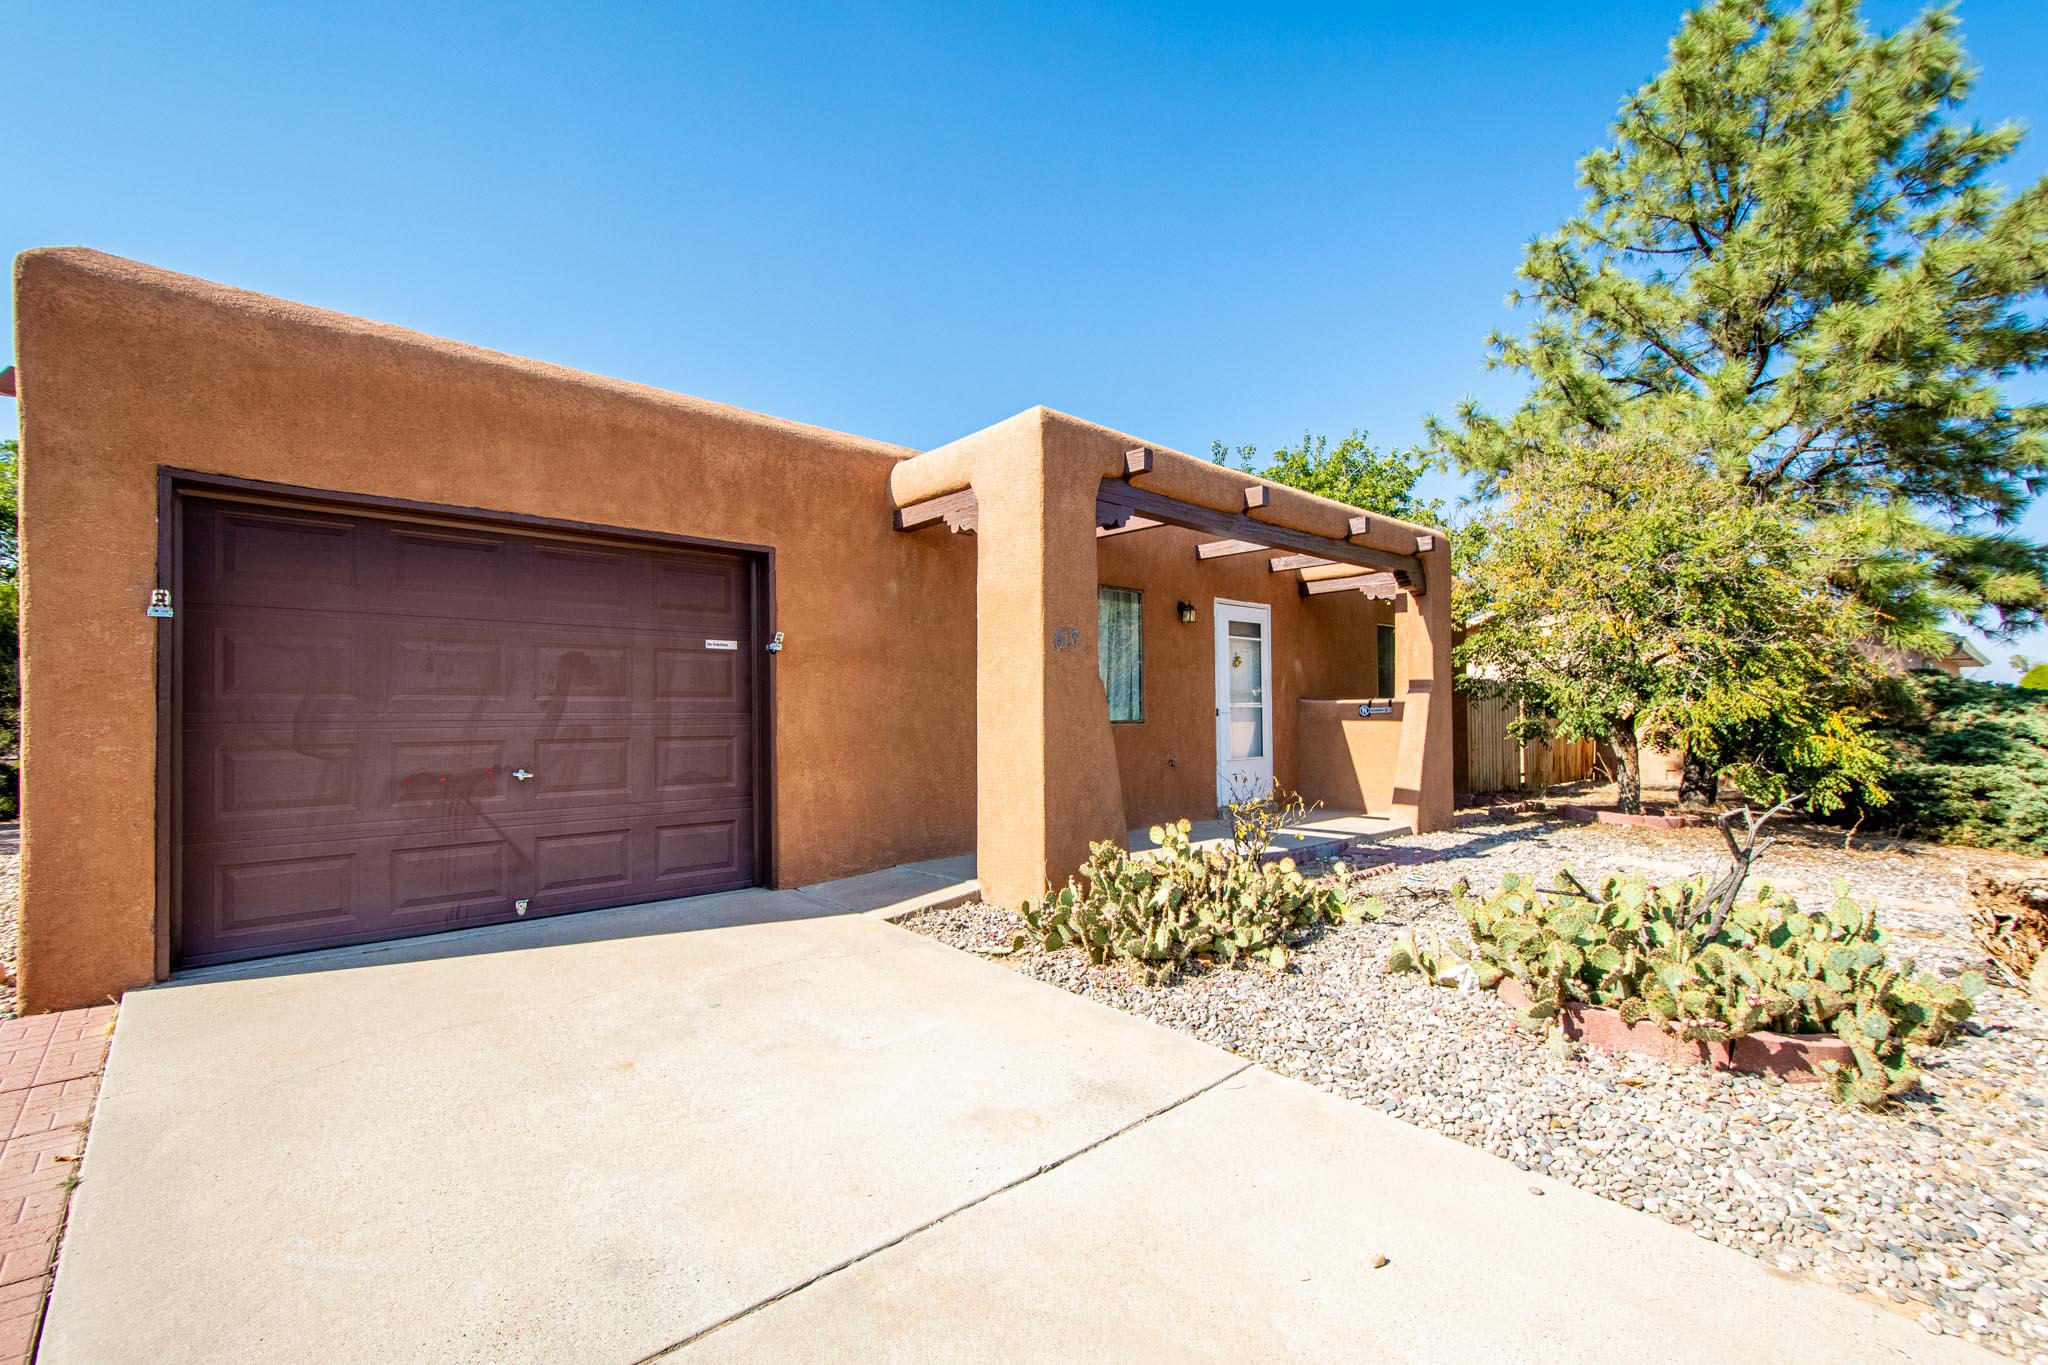 ***BACK ON THE MARKET***Come see this cute little home in the heart of Rio Rancho.  This home has been freshly painted and polished just for you!  Come see this lovely 2-bedroom, 1-bath home on a HUGE lot.  It even has a single car garage.  This home is convenient to NM 528 and all the shopping needs you can imagine.